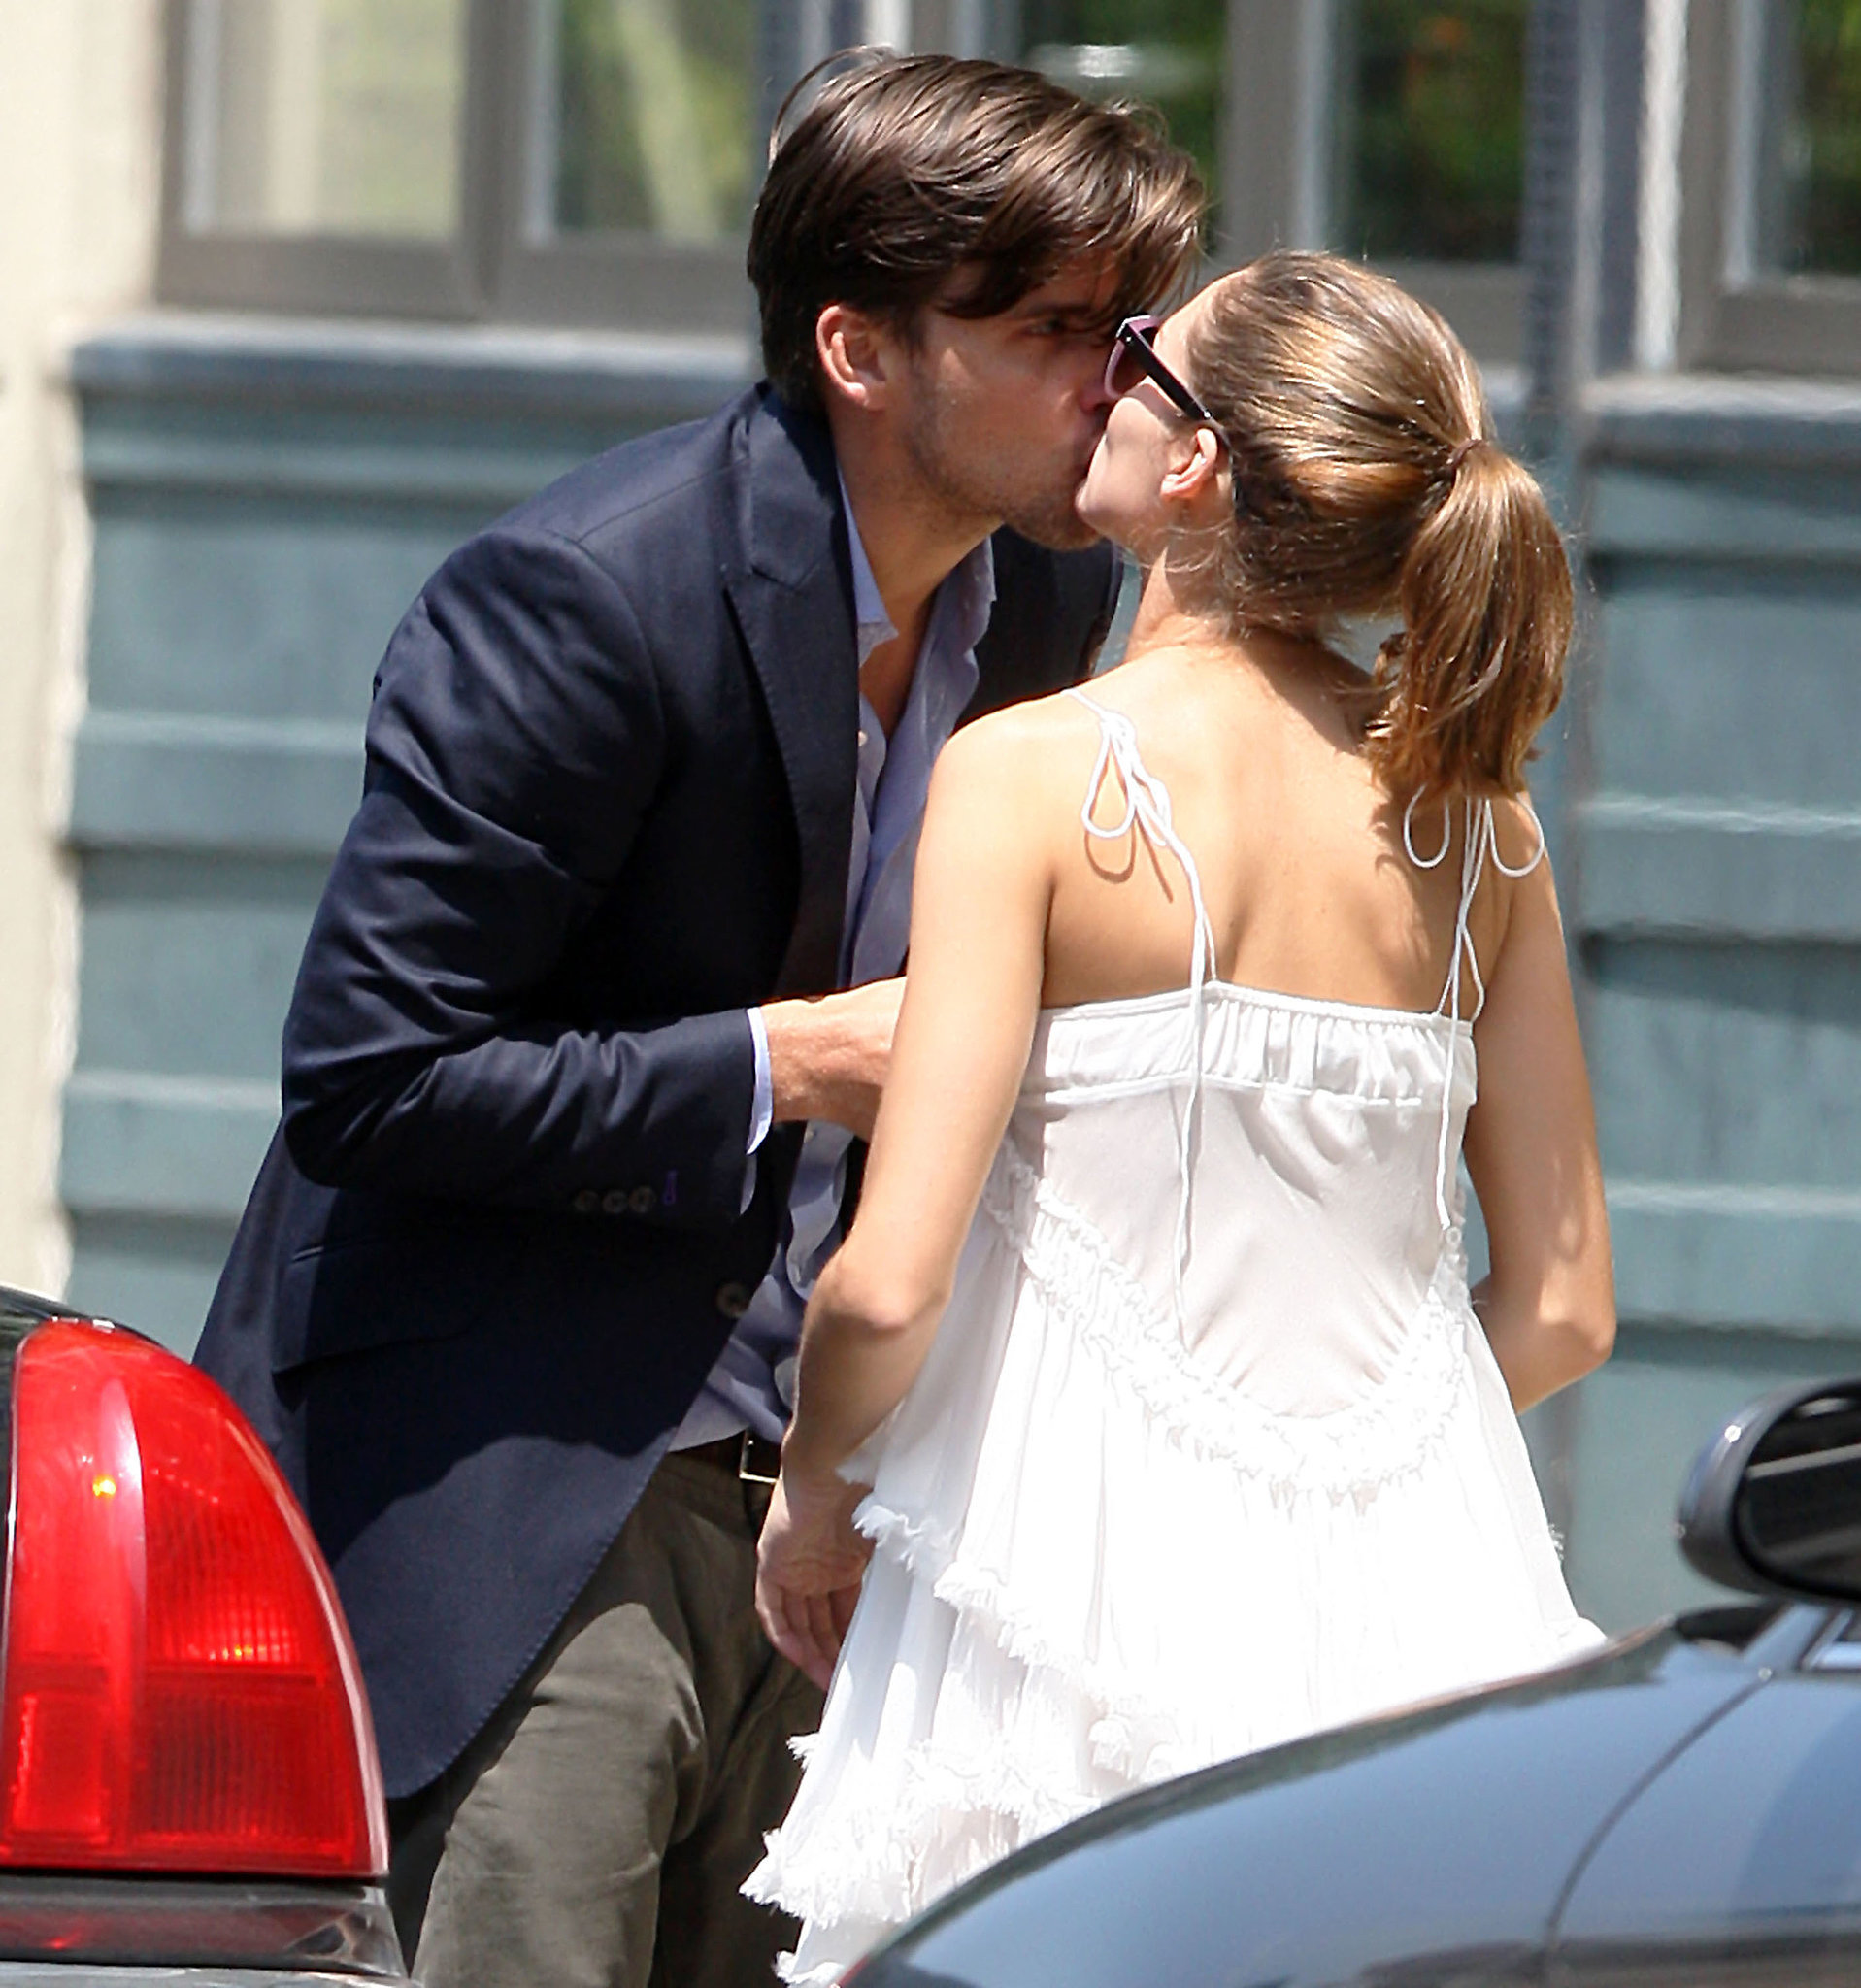 Olivia Palermo gave boyfriend Johannes Huebl a goodbye kiss in NYC in May 2012.